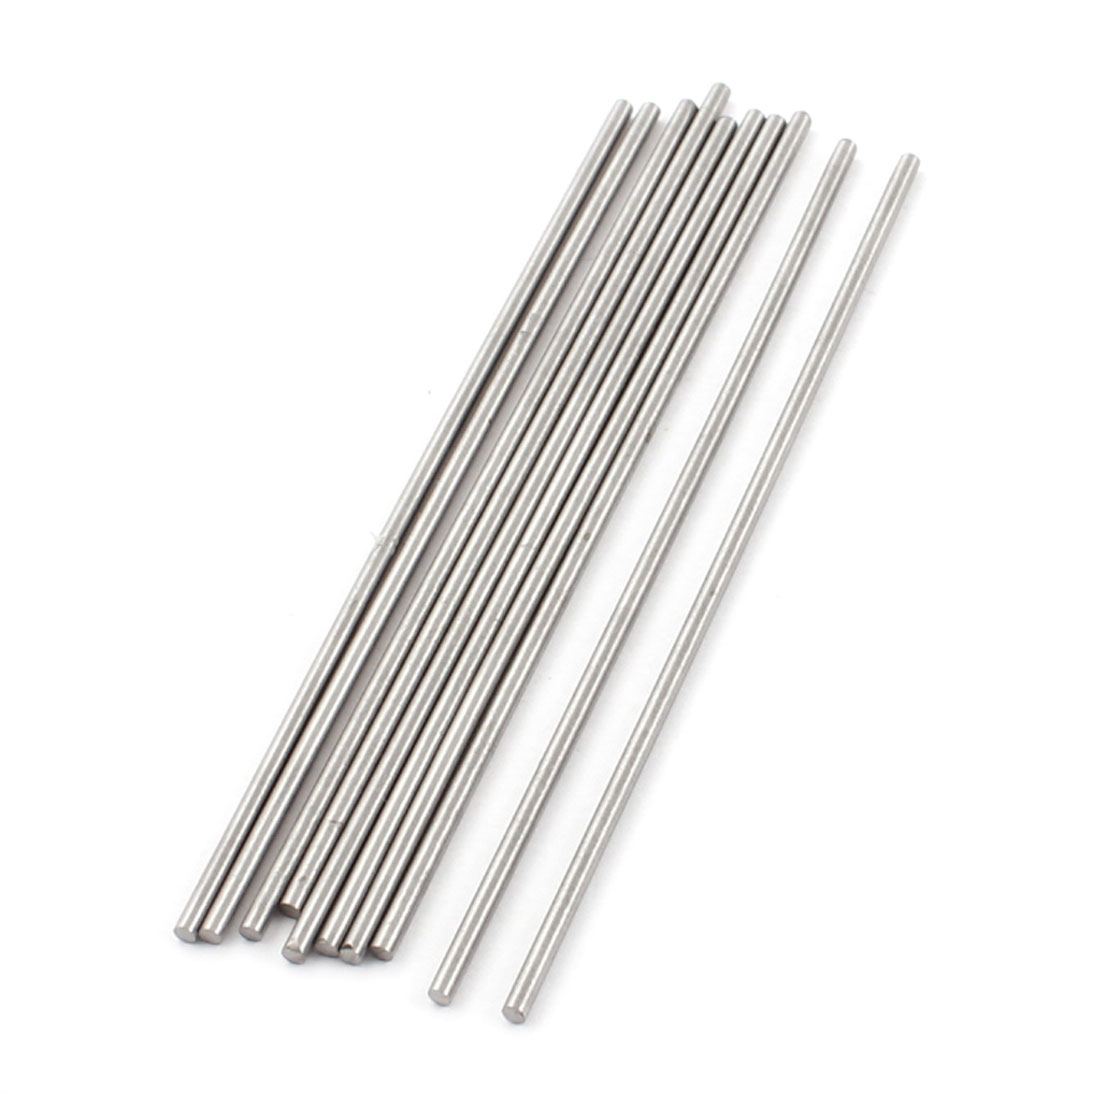 10Pcs 2mm x 100mm Silver Tone HSS Straight Machine Turning Tool Round Lathe Rod Bar Stick